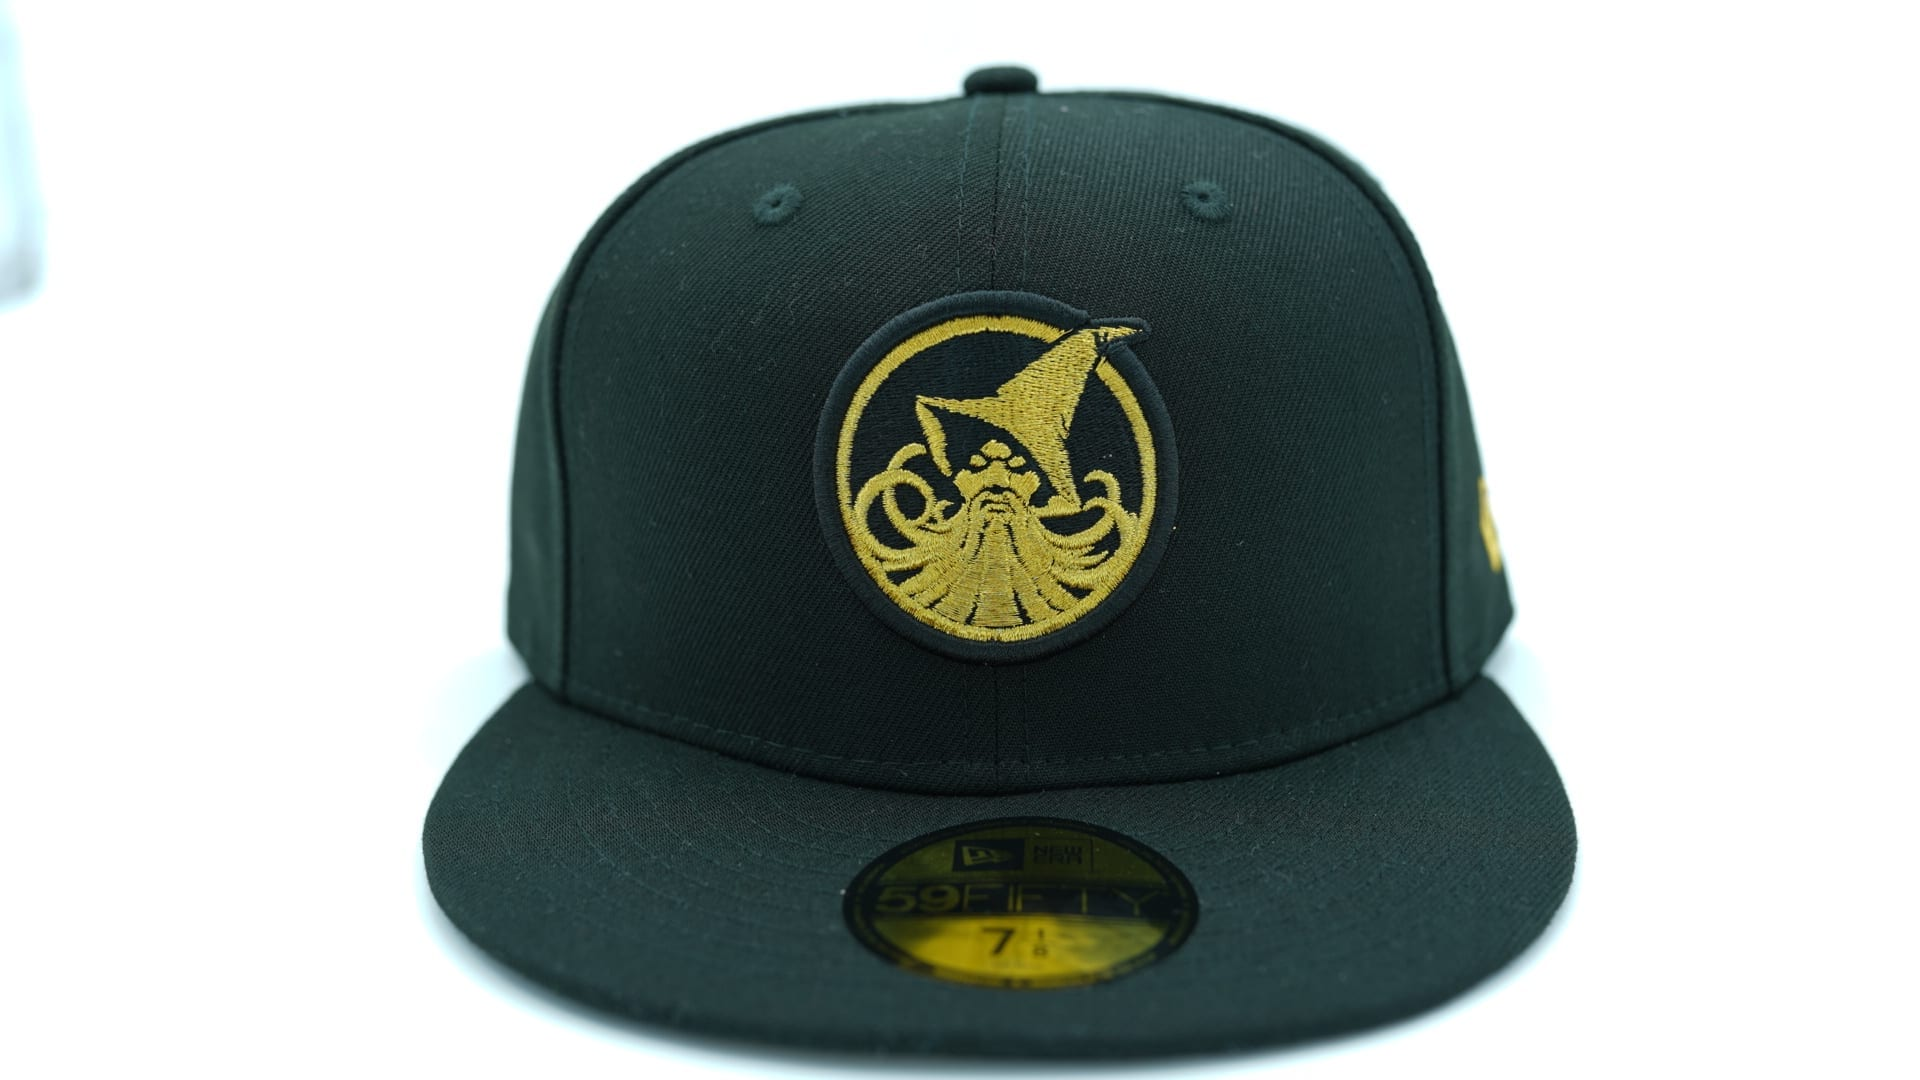 Home of Equality 5950 Fitted Cap by Milk x New Era Side Flag